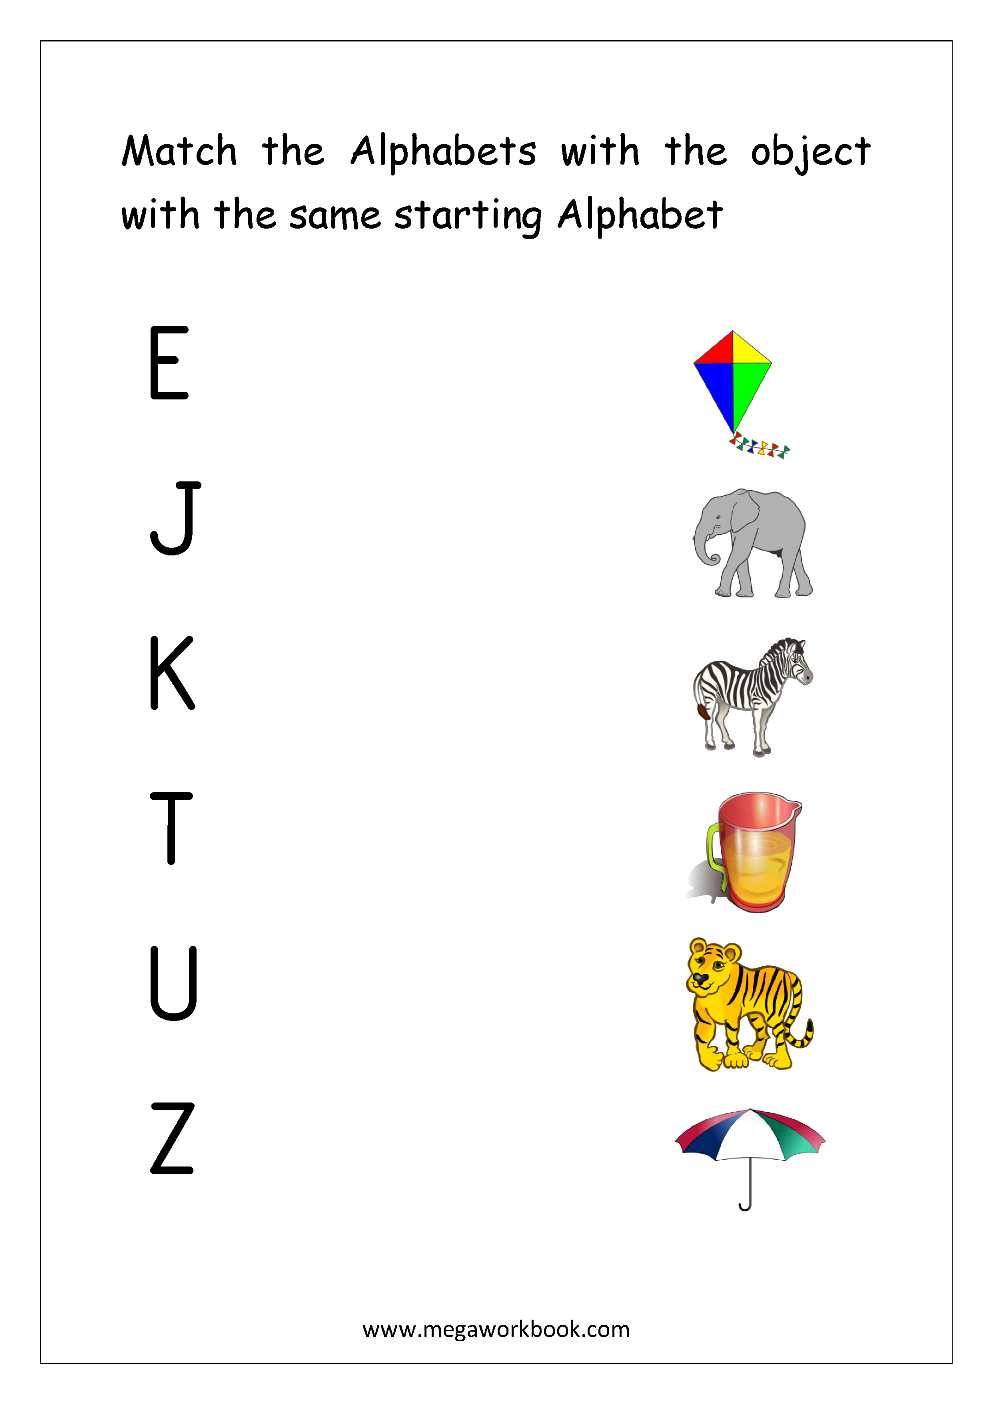 Free English Worksheets - Alphabet Matching - Megaworkbook pertaining to Alphabet Matching Worksheets For Nursery